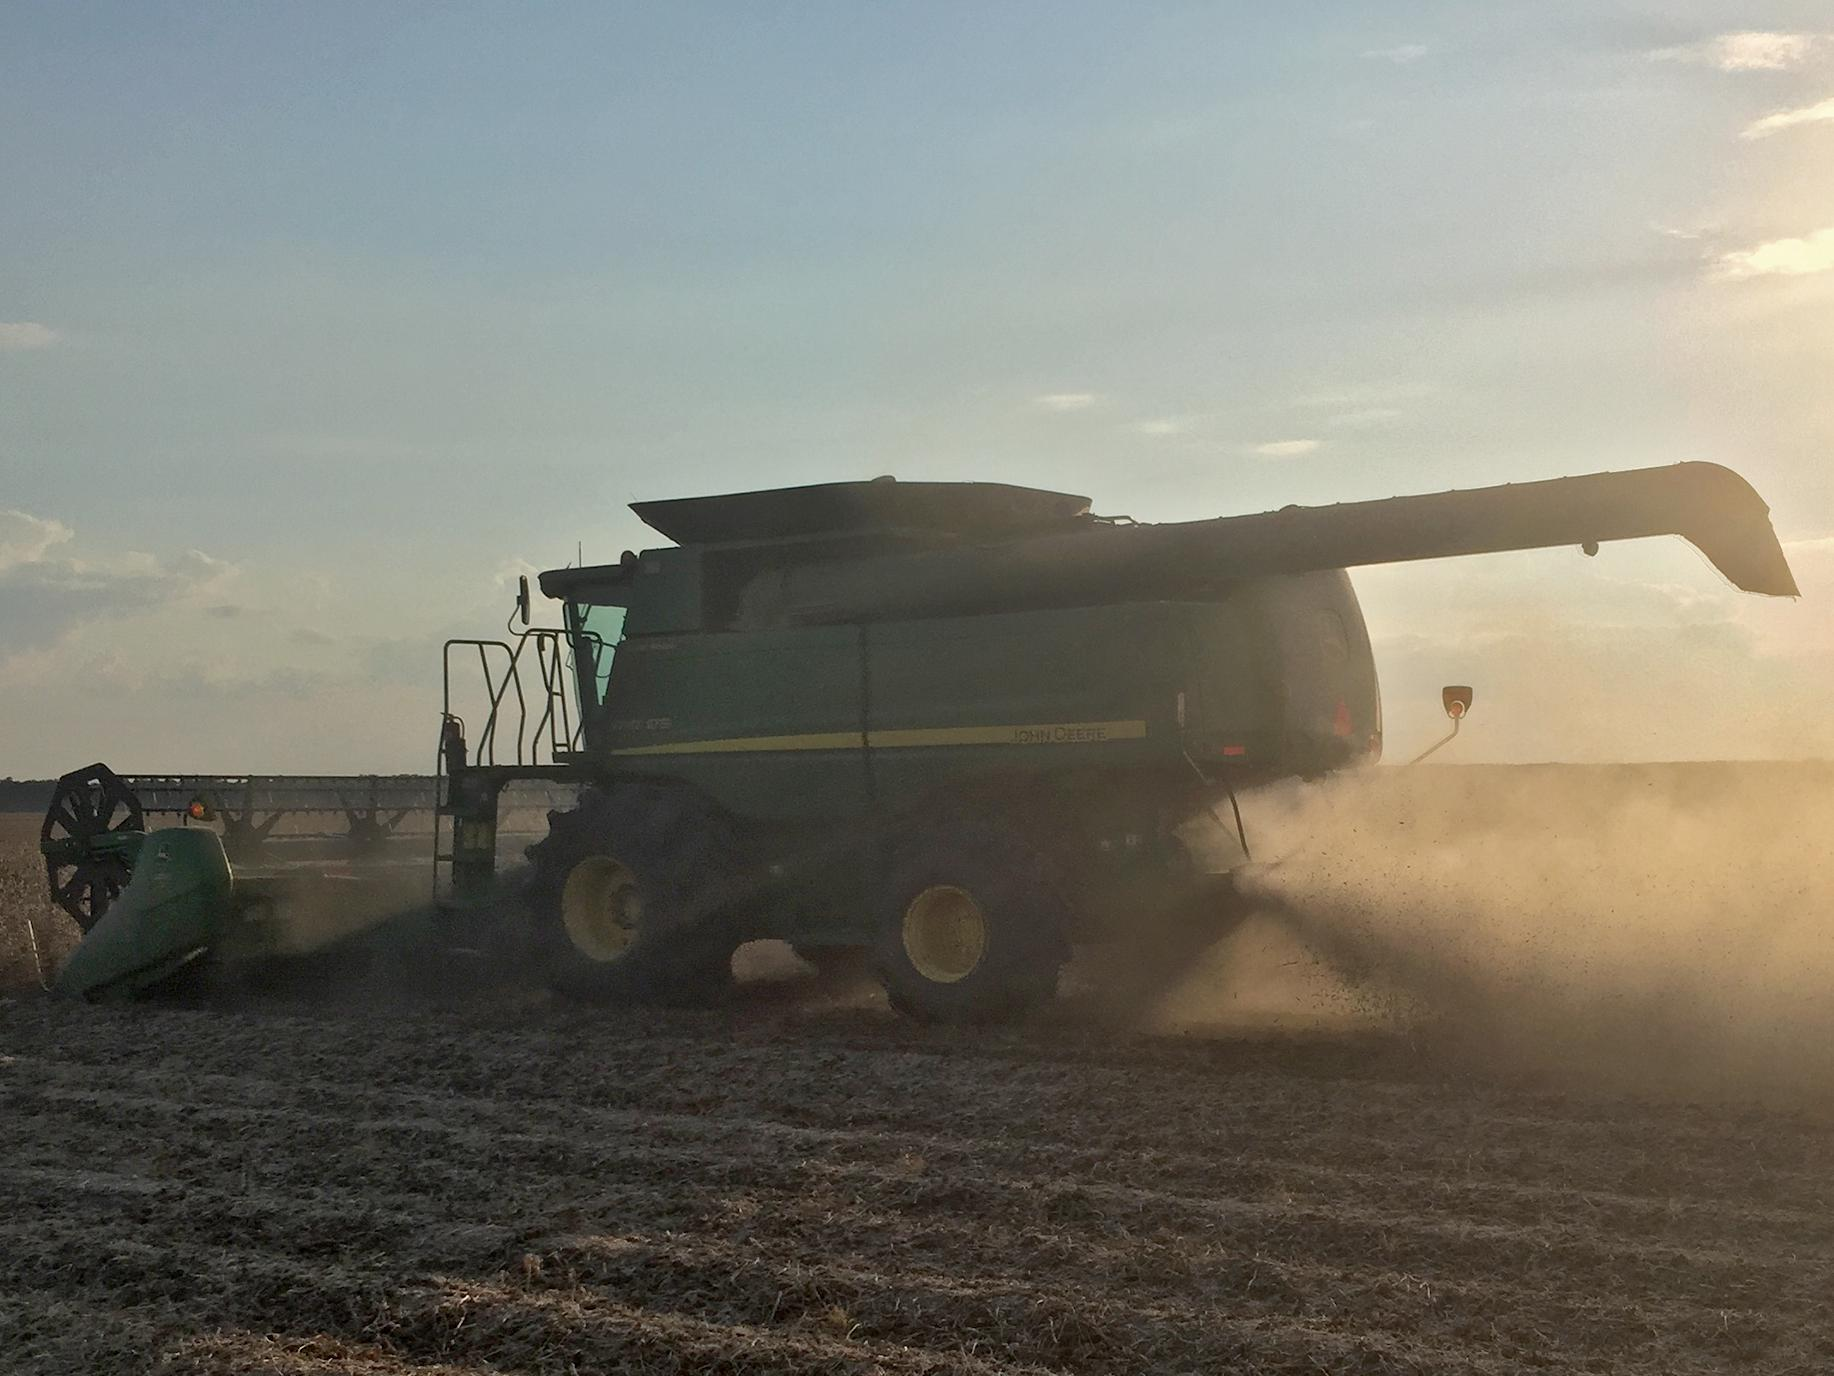 Harvest was nearly done by the end of October for the state's 2 million acre soybean crop. Experts expect yields to average 48 bushels per acre across the state, keeping this year's production in line with that of recent years. This combine was harvesting Leflore County soybeans Sept. 23, 2016. (Photo by MSU Extension Service/Trent Irby)​